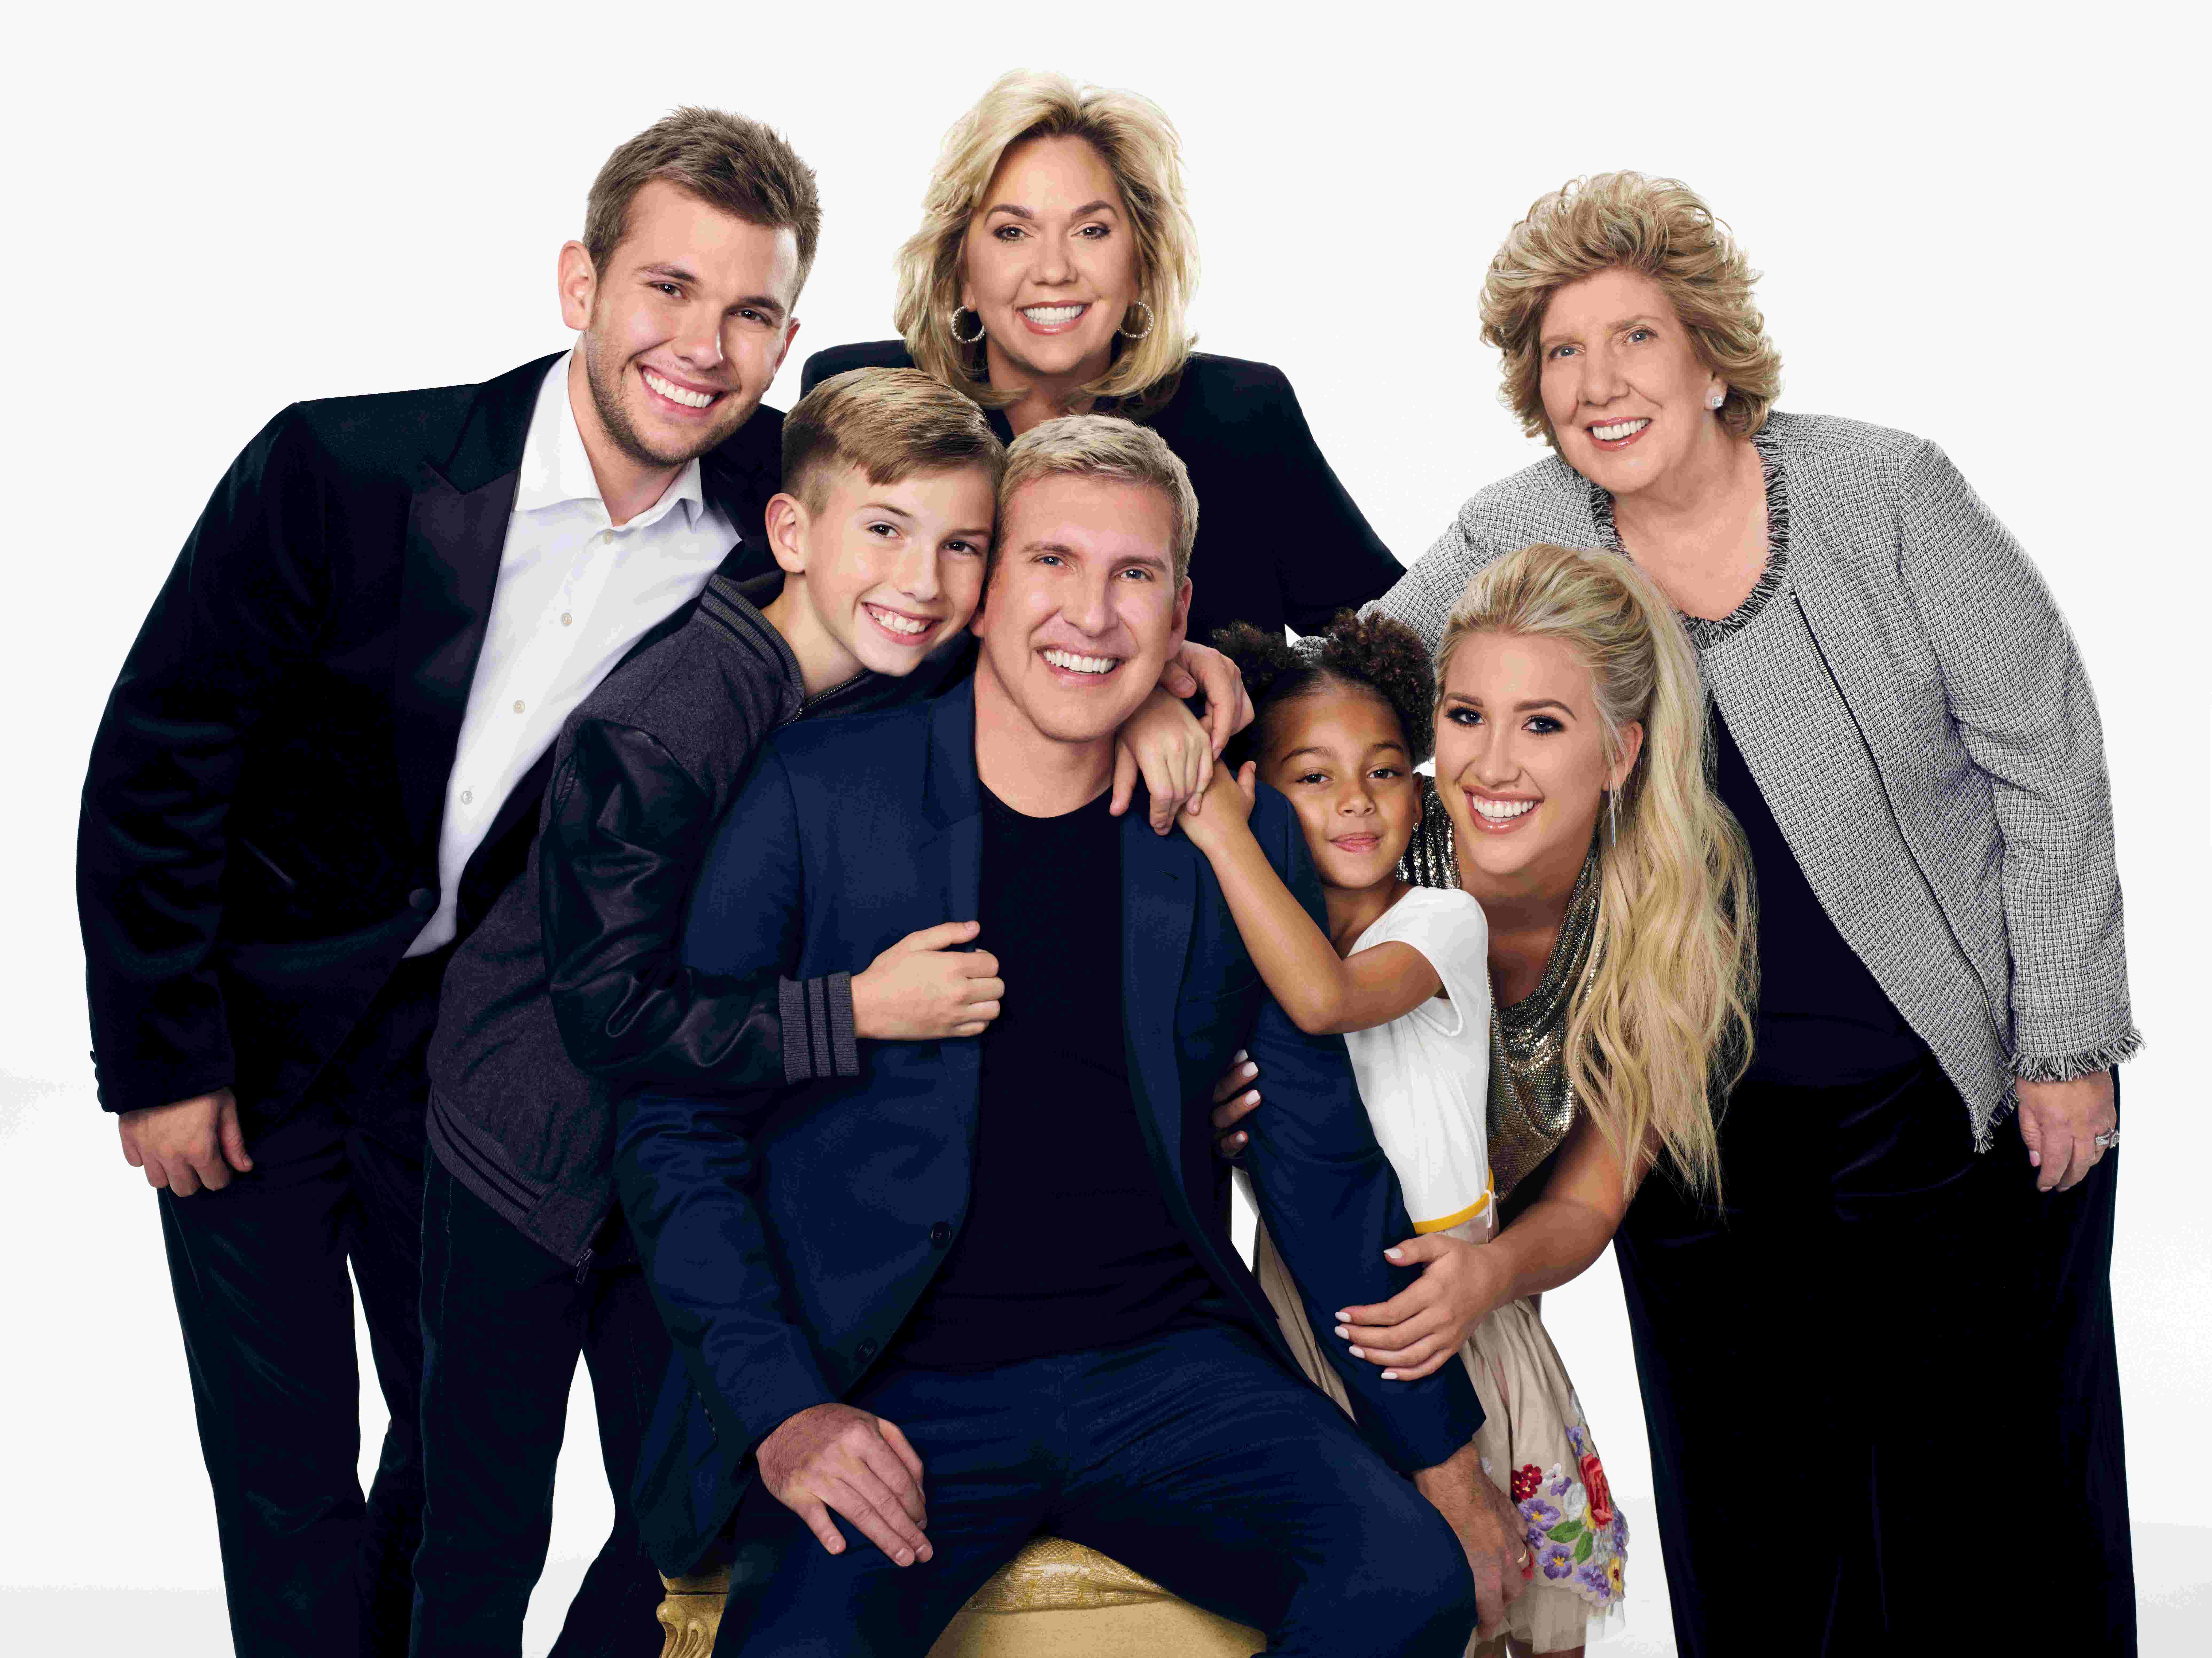 Chrisley Knows Best 2019 Chrisley Knows Best' TV show stars say Chloe is 'surrounded by love'